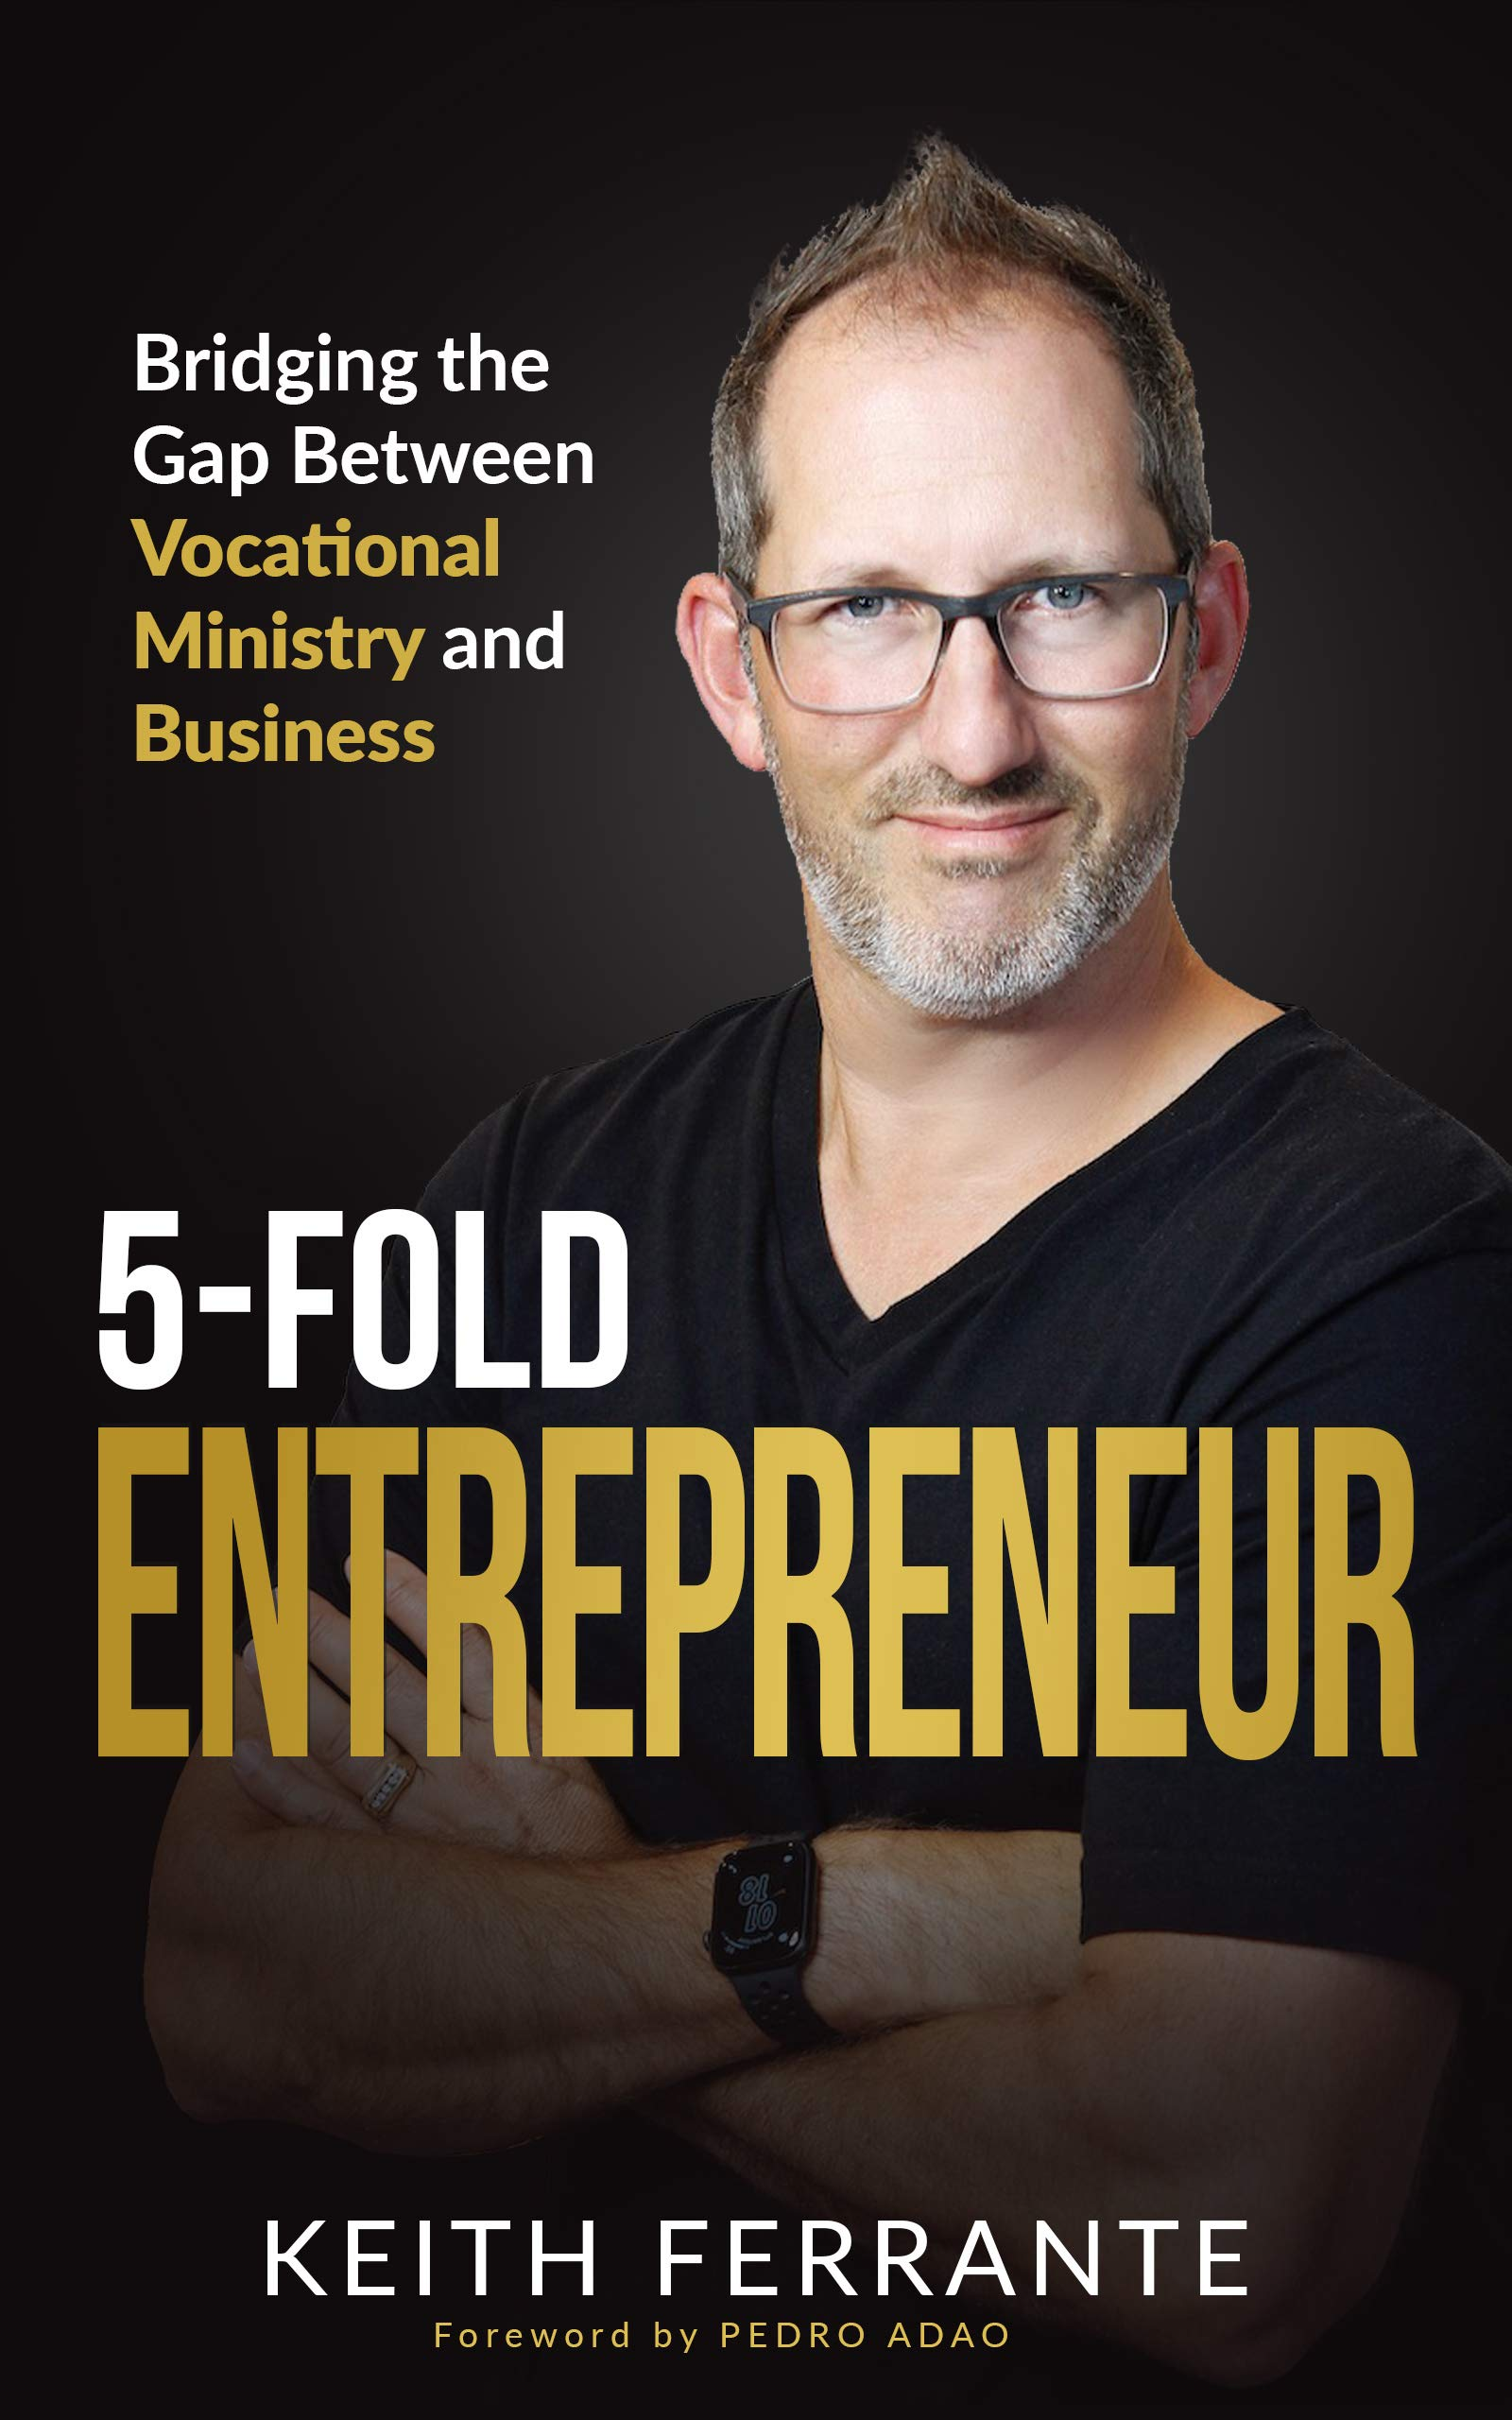 5-Fold Entrepreneur: Bridging the Gap Between Business and Vocational Ministry